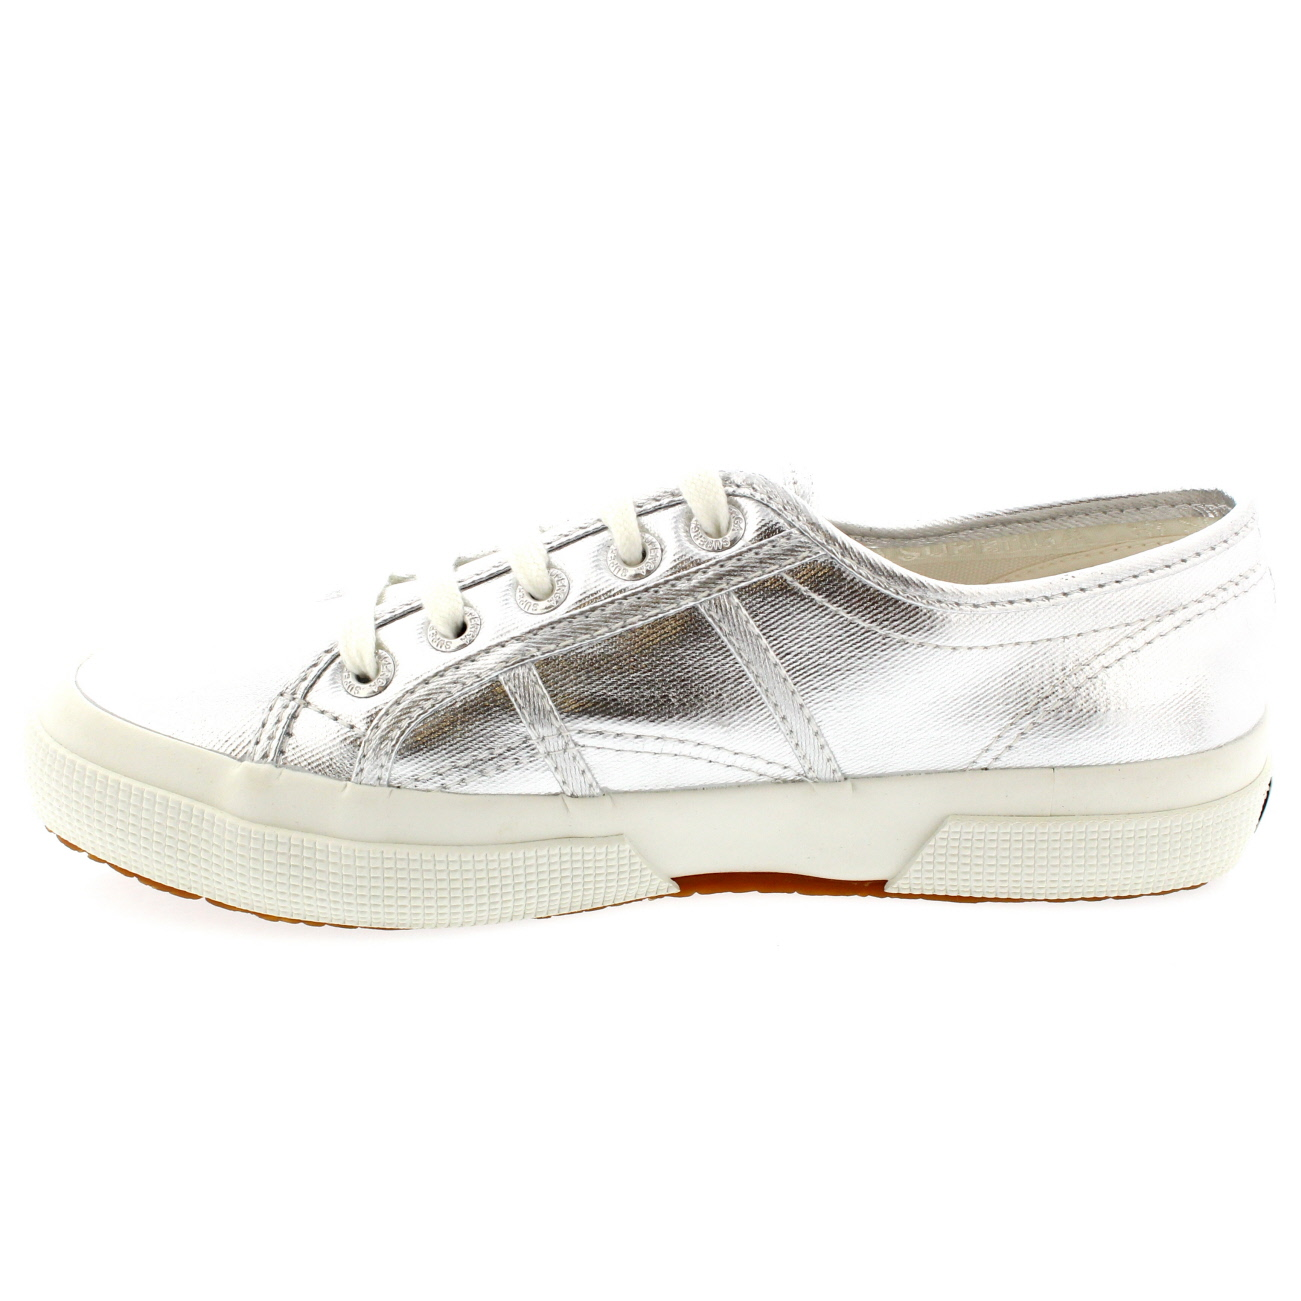 Womens Superga 2750 Cotmetu Casual Metallic Low Top Plimsoll Trainers Trainers Trainers UK 3-8 2032a5